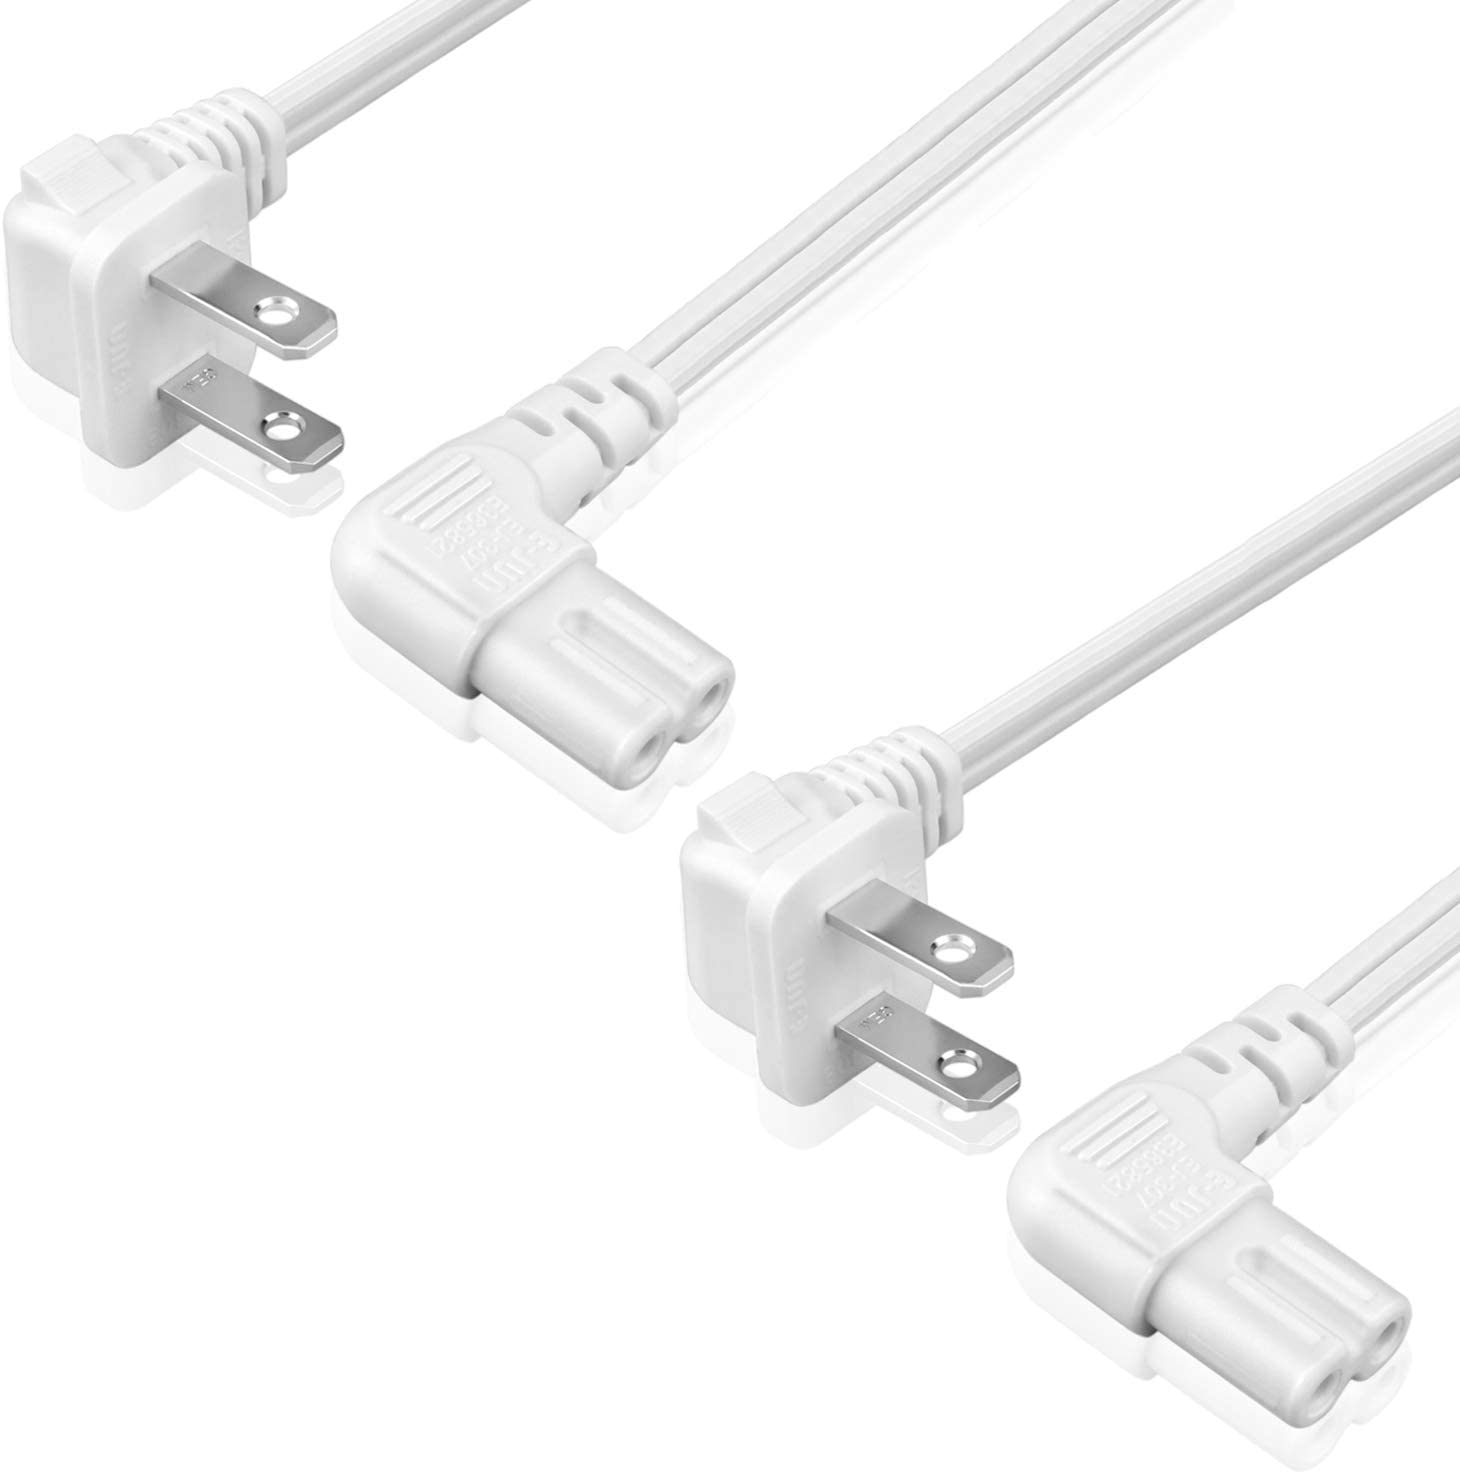 TNP Universal 2 Prong Angled Power Cord (6 Feet) 2 Pack - NEMA 1-15P to IEC320 C7 Figure 8 Shotgun Connector AC Power Supply Cable Wire Socket Plug Jack (White) Compatible w/Apple TV, PS4 PS3 Slim